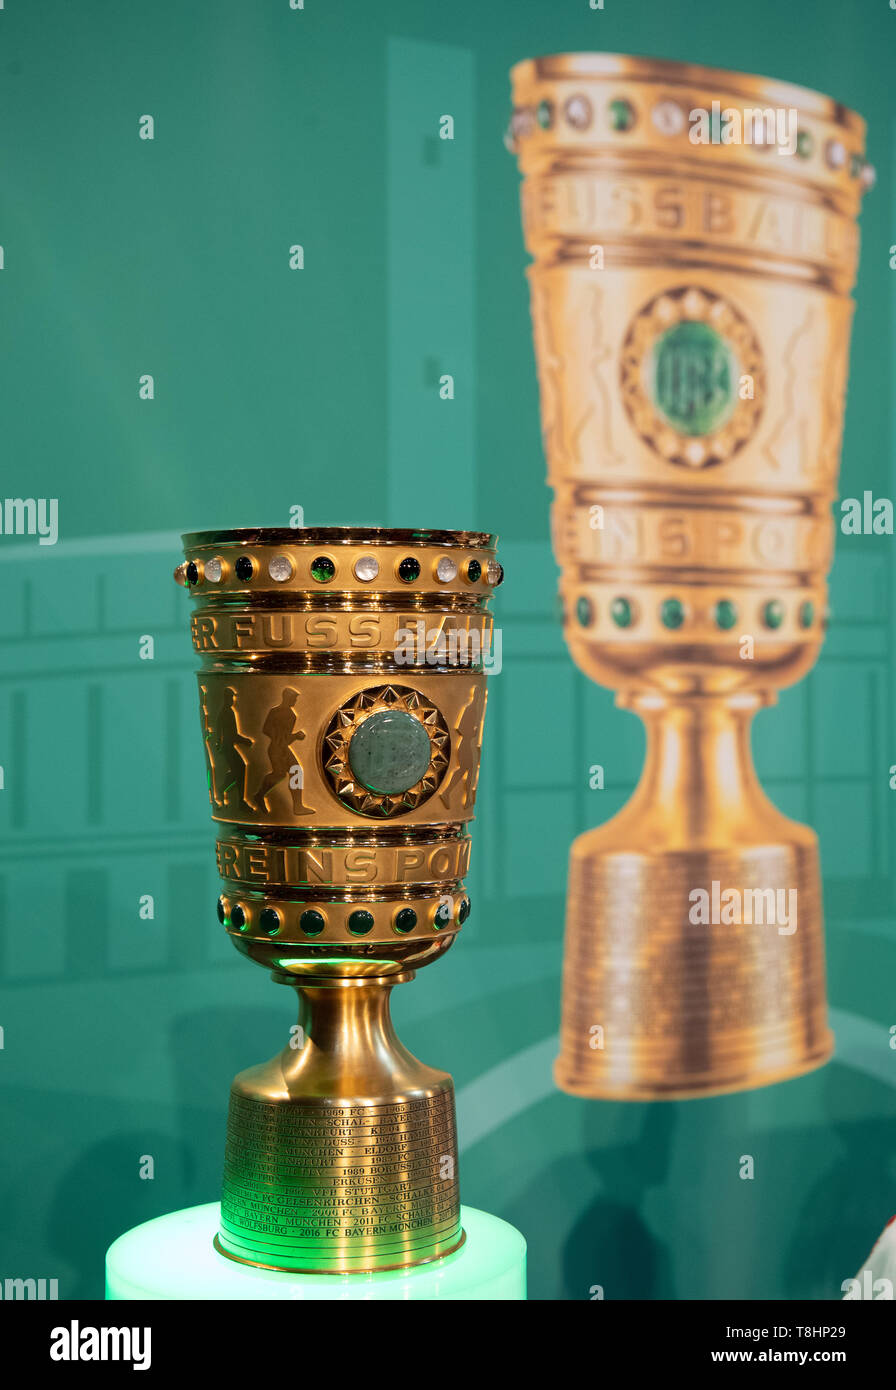 10 May 2019, Berlin: Soccer: DFB Cup, Cup Handover of the DFB Cup. The DFB Cup will be placed on a pedestal before the start of the event. Photo: Soeren Stache/dpa - Stock Image